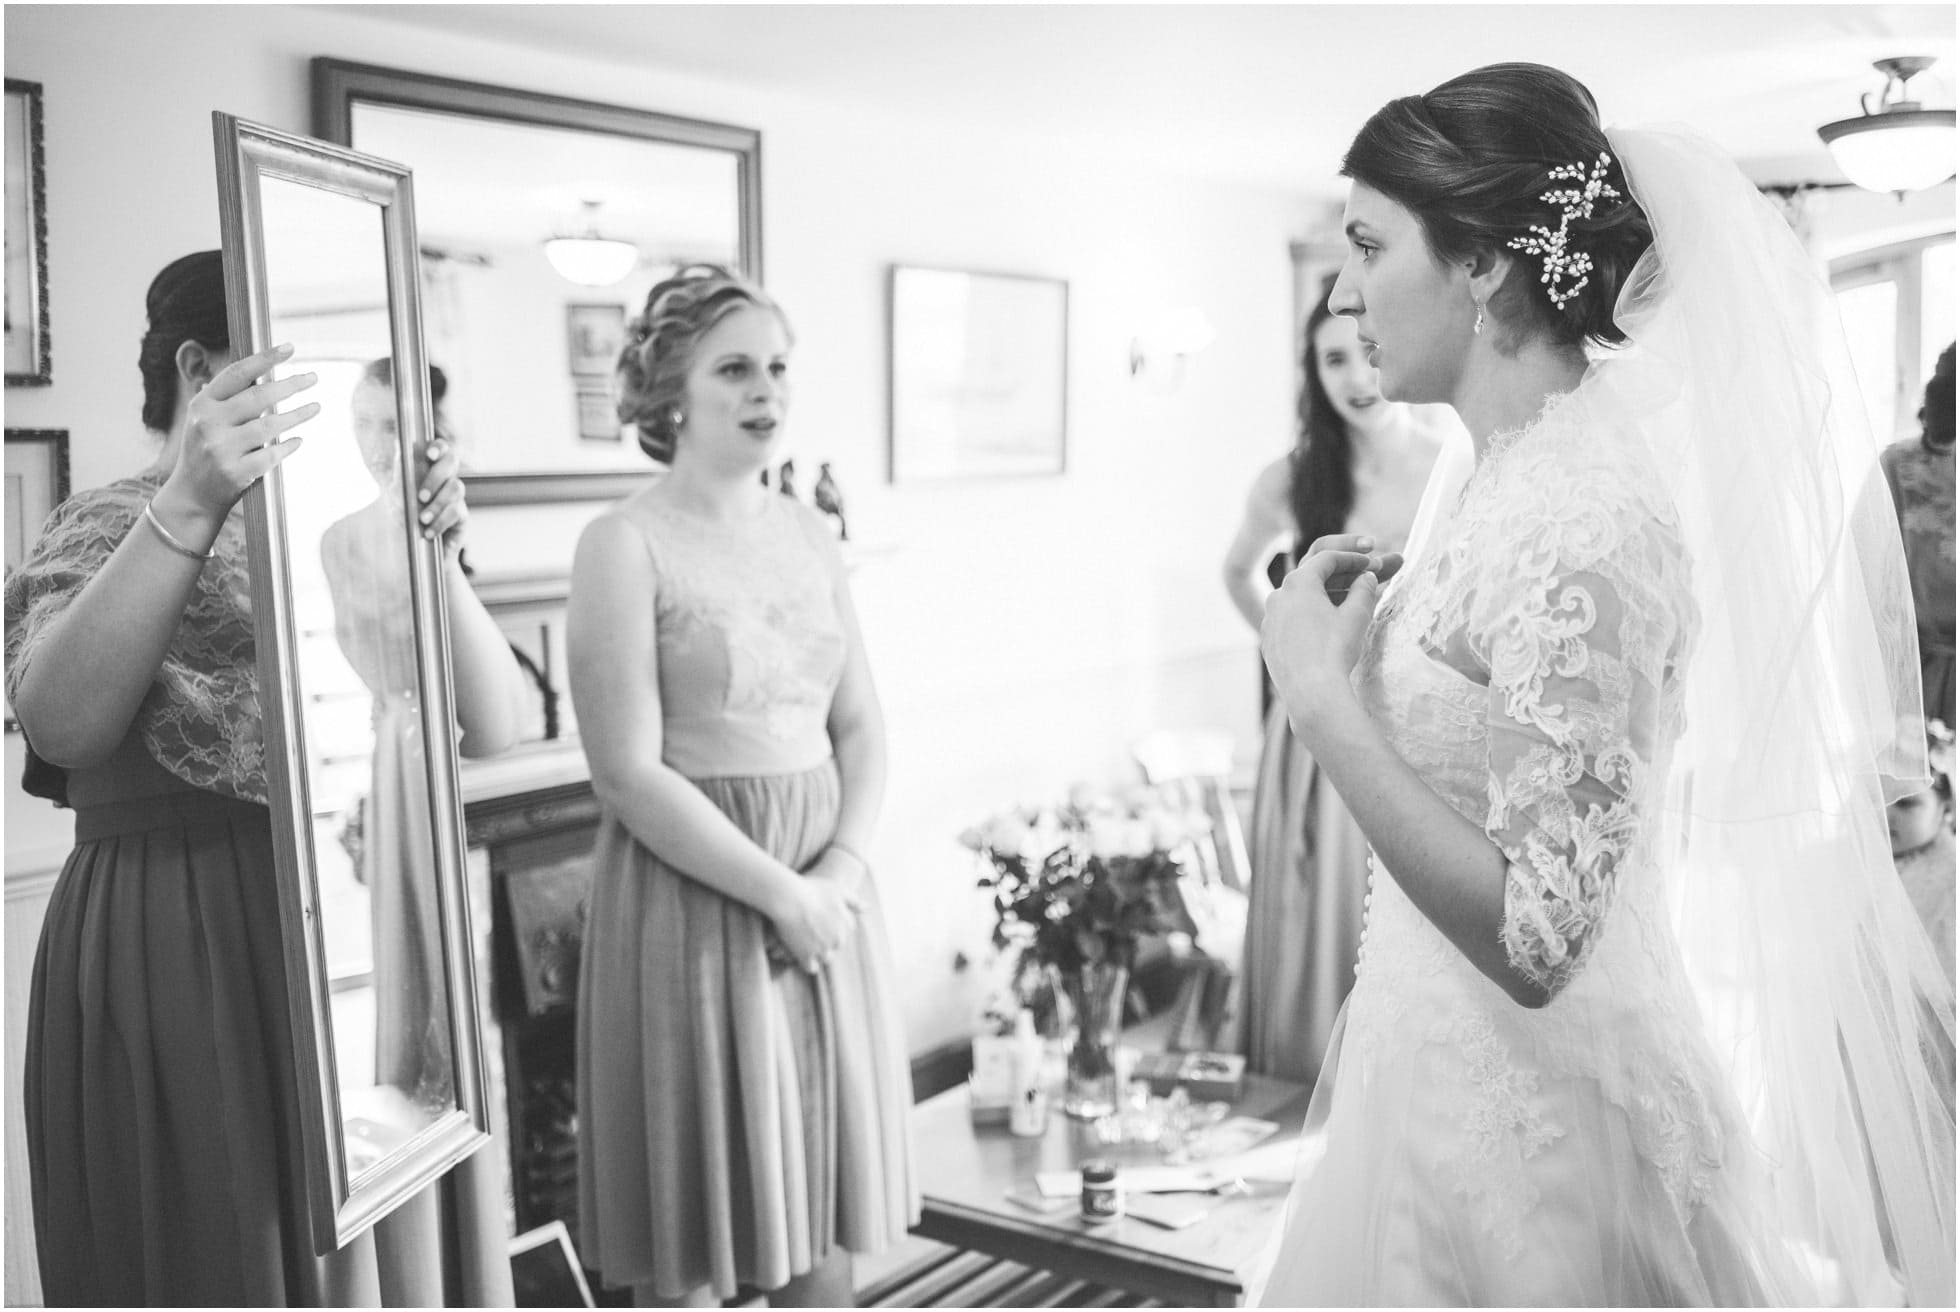 Bride looking into the mirror after putting dress on